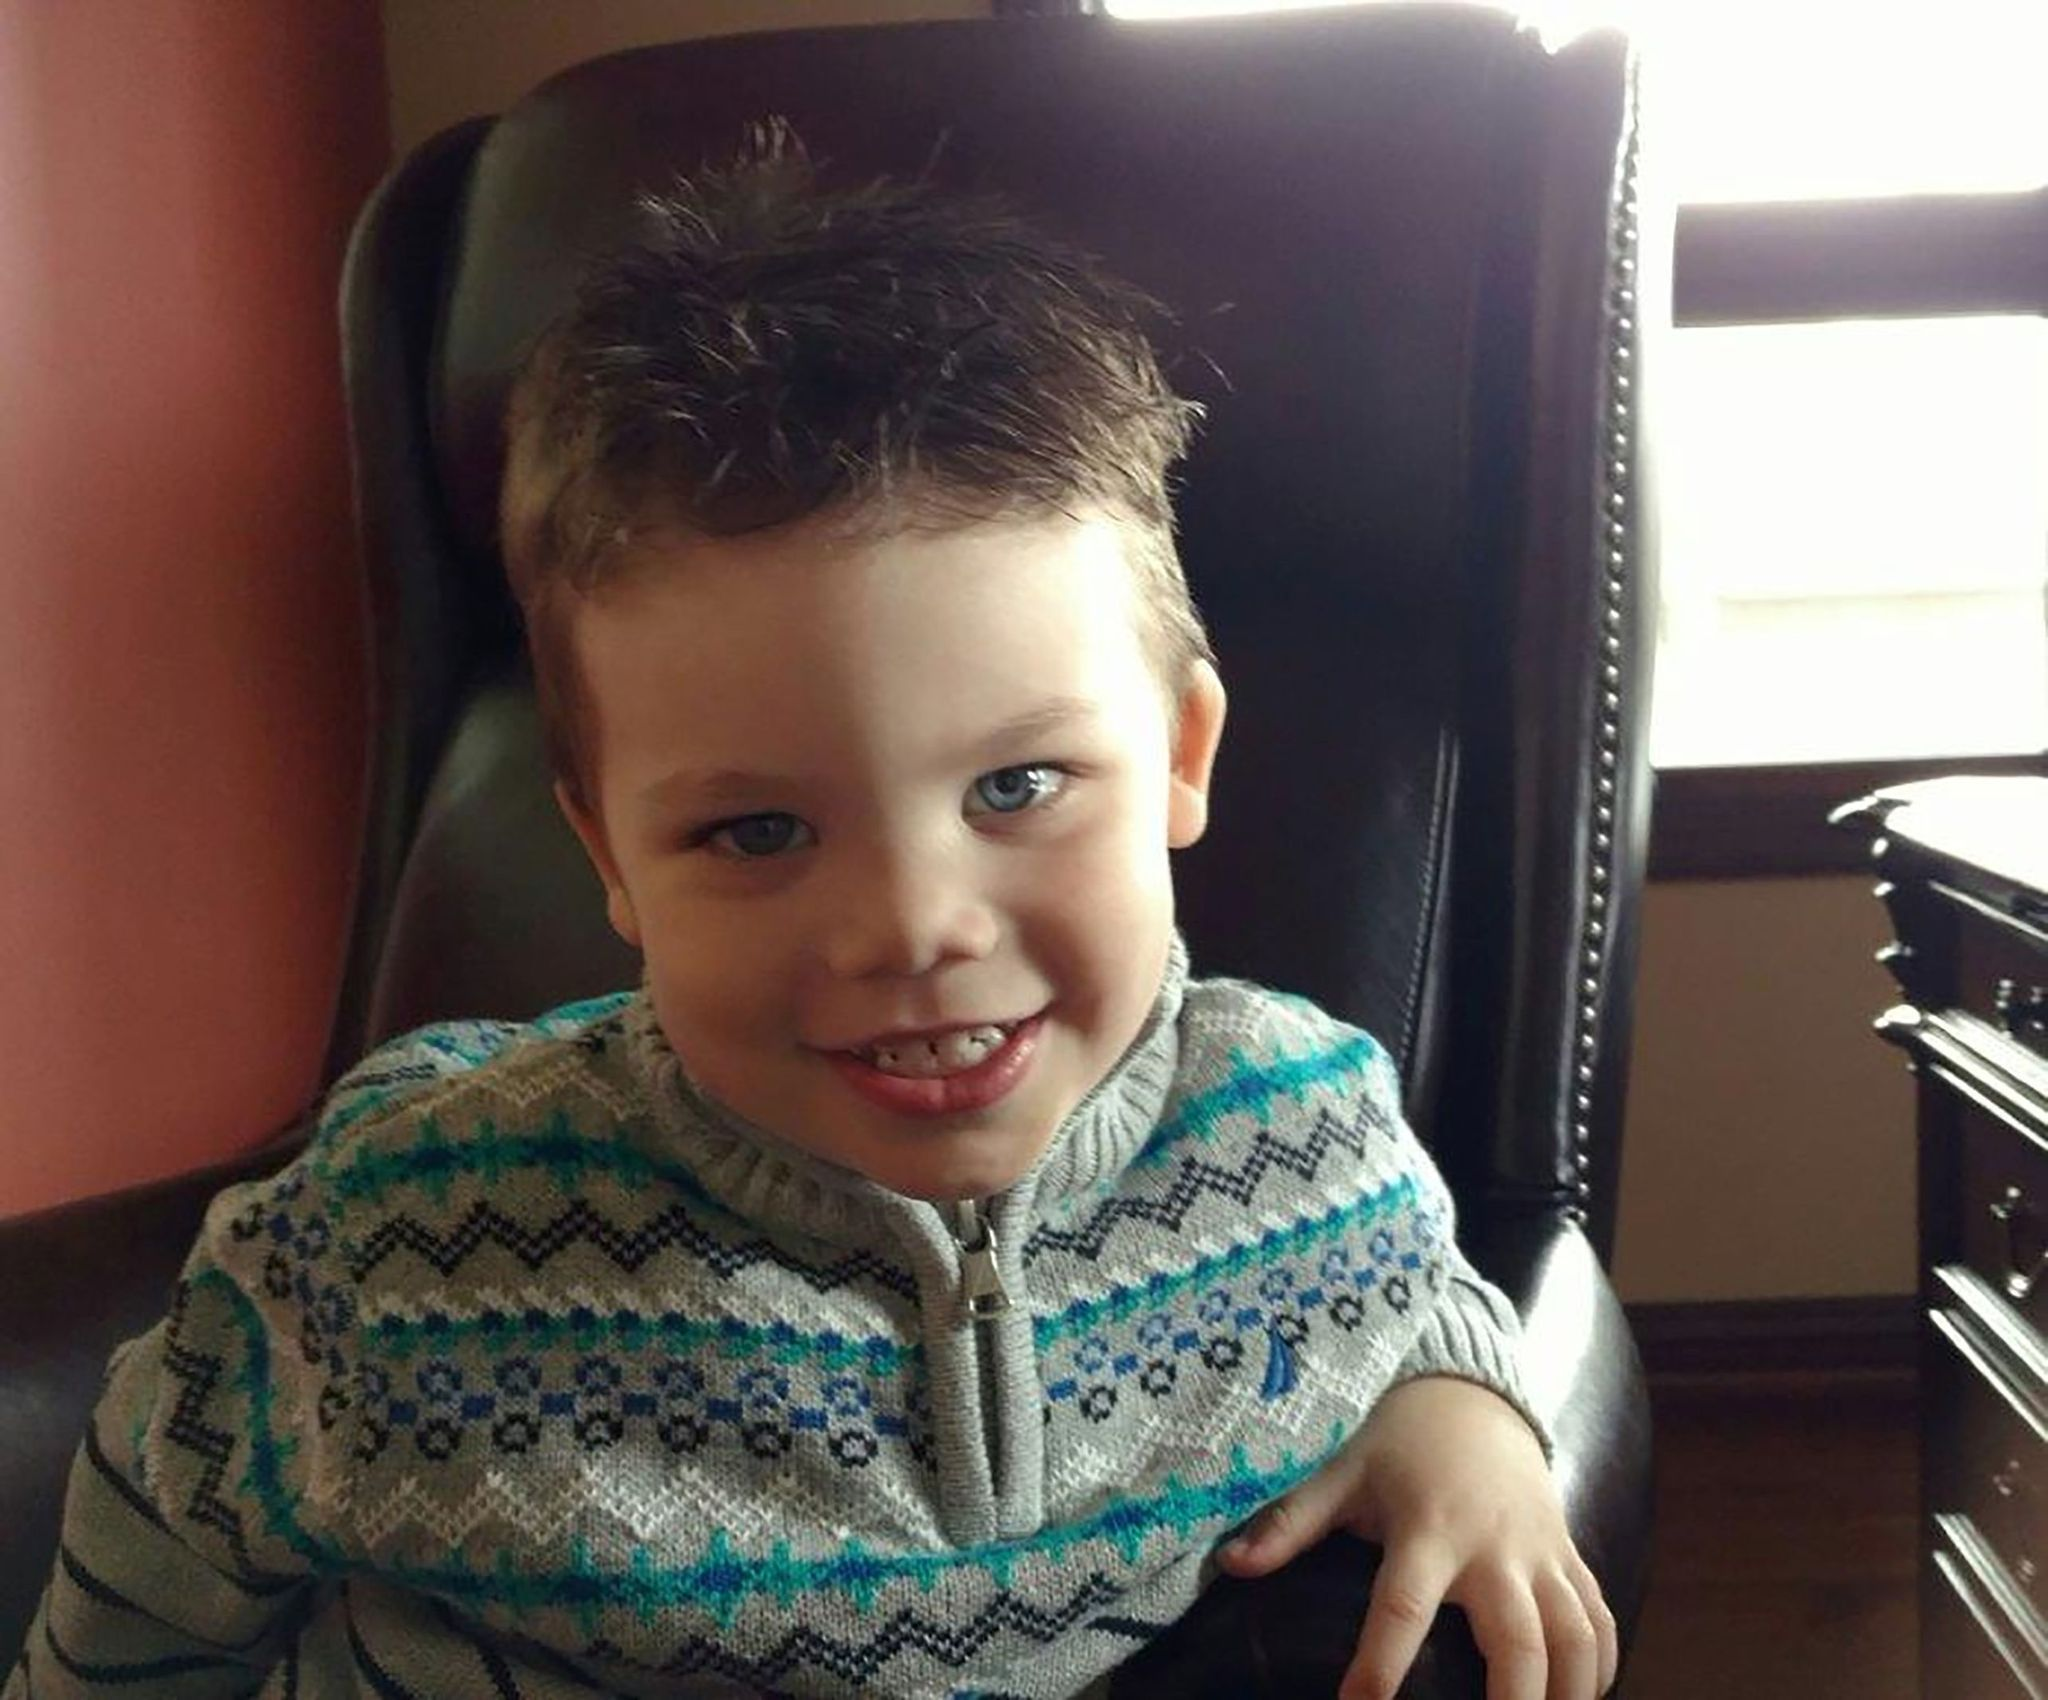 tot killed by gator at disney i am absolutely stunned